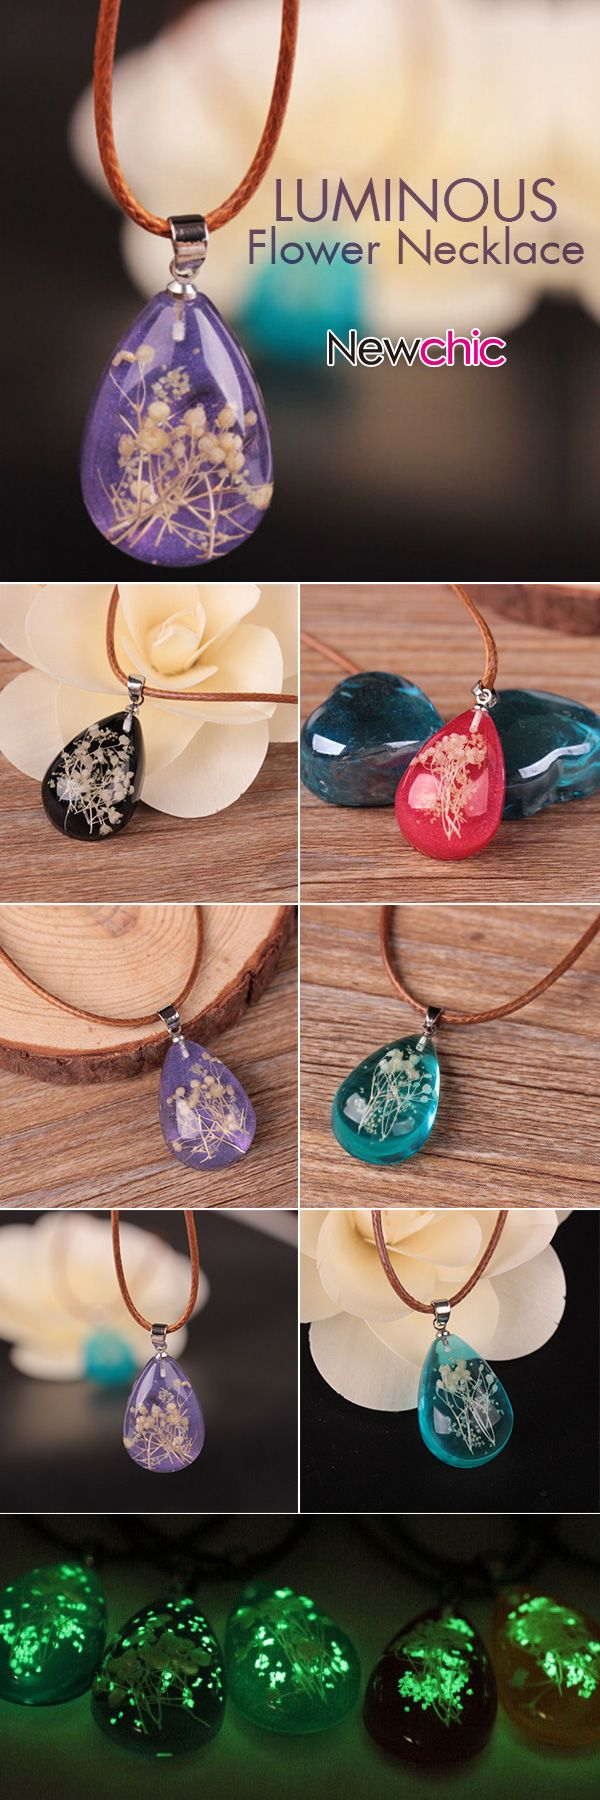 [Newchic Online Shopping] 53% OFF Luminous Flower Necklace